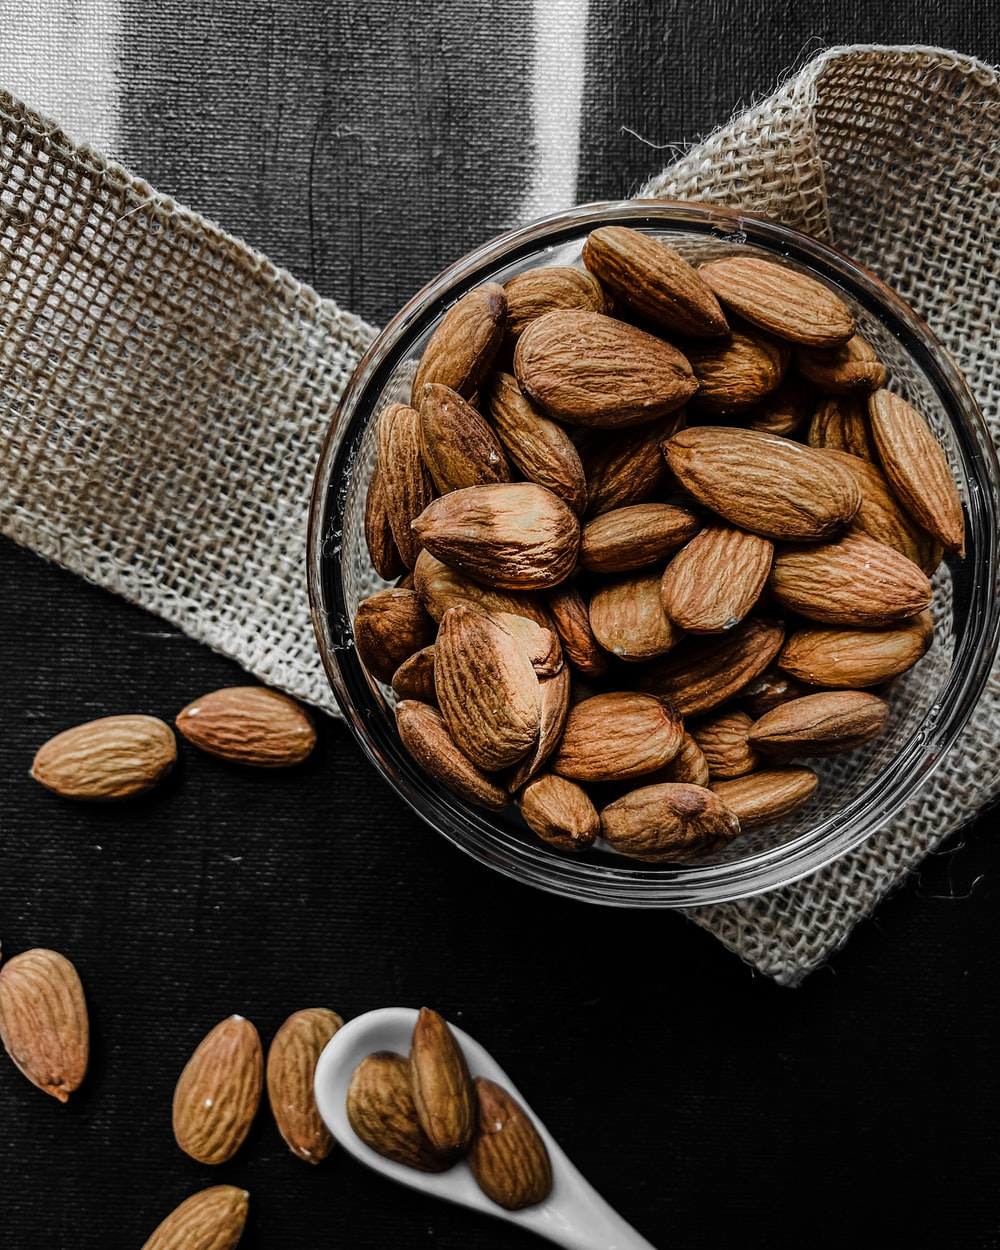 brown almond nuts on stainless steel bowl